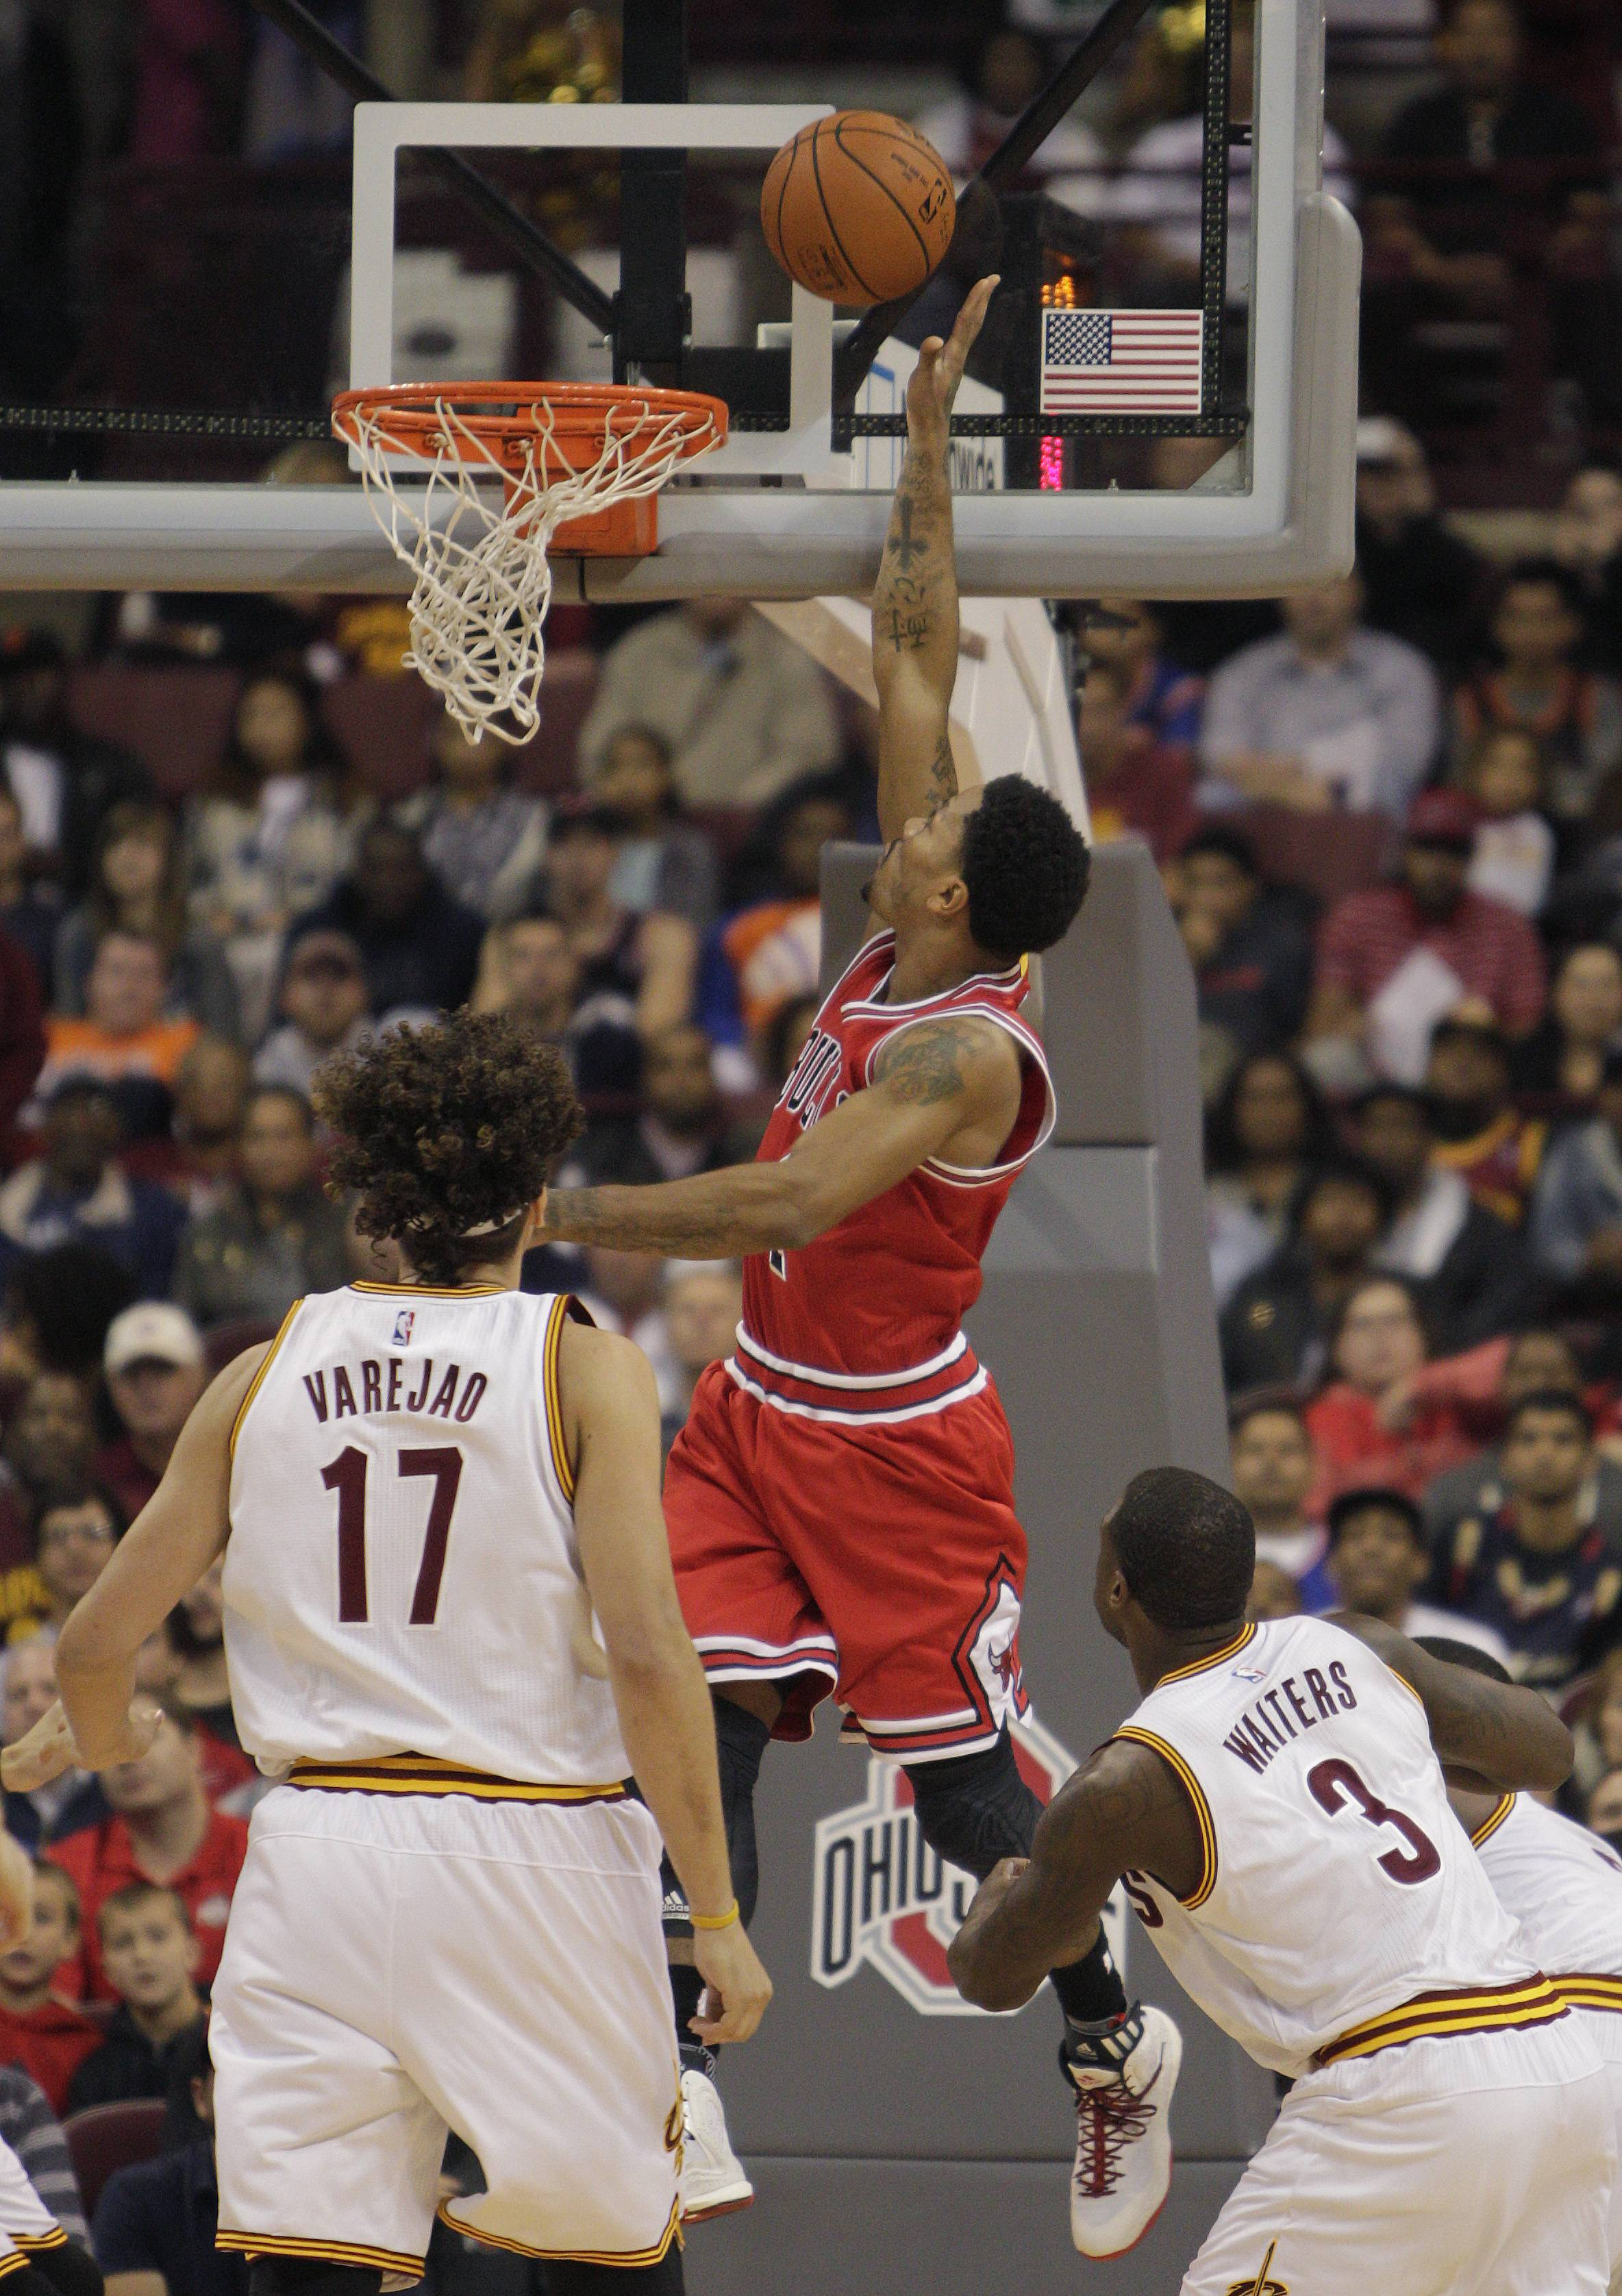 Bulls guard Derrick Rose tips in a rebound against the Cleveland Cavaliers in Monday night's preseason game at Columbus, Ohio. Rose finished with 30 points, playing just 24 minutes.